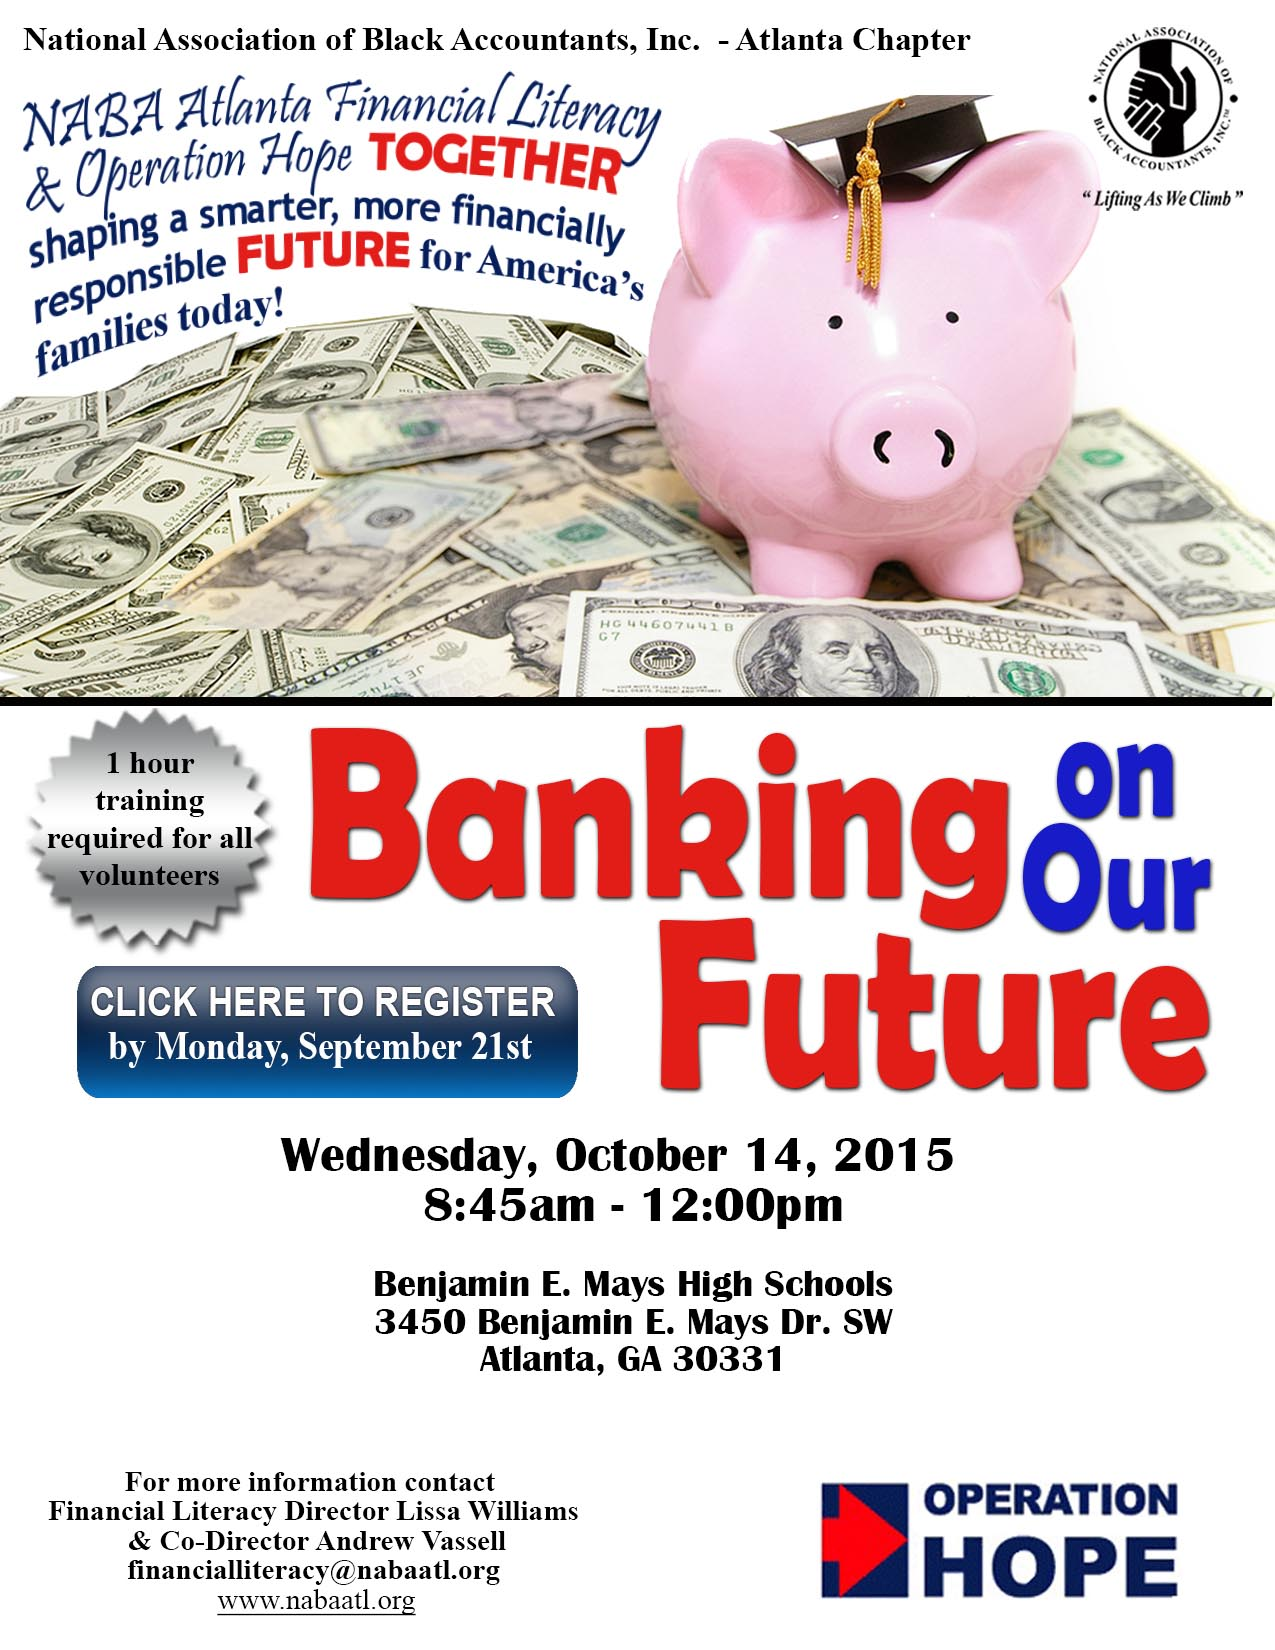 Financial Literacy Committee - Fall 2015